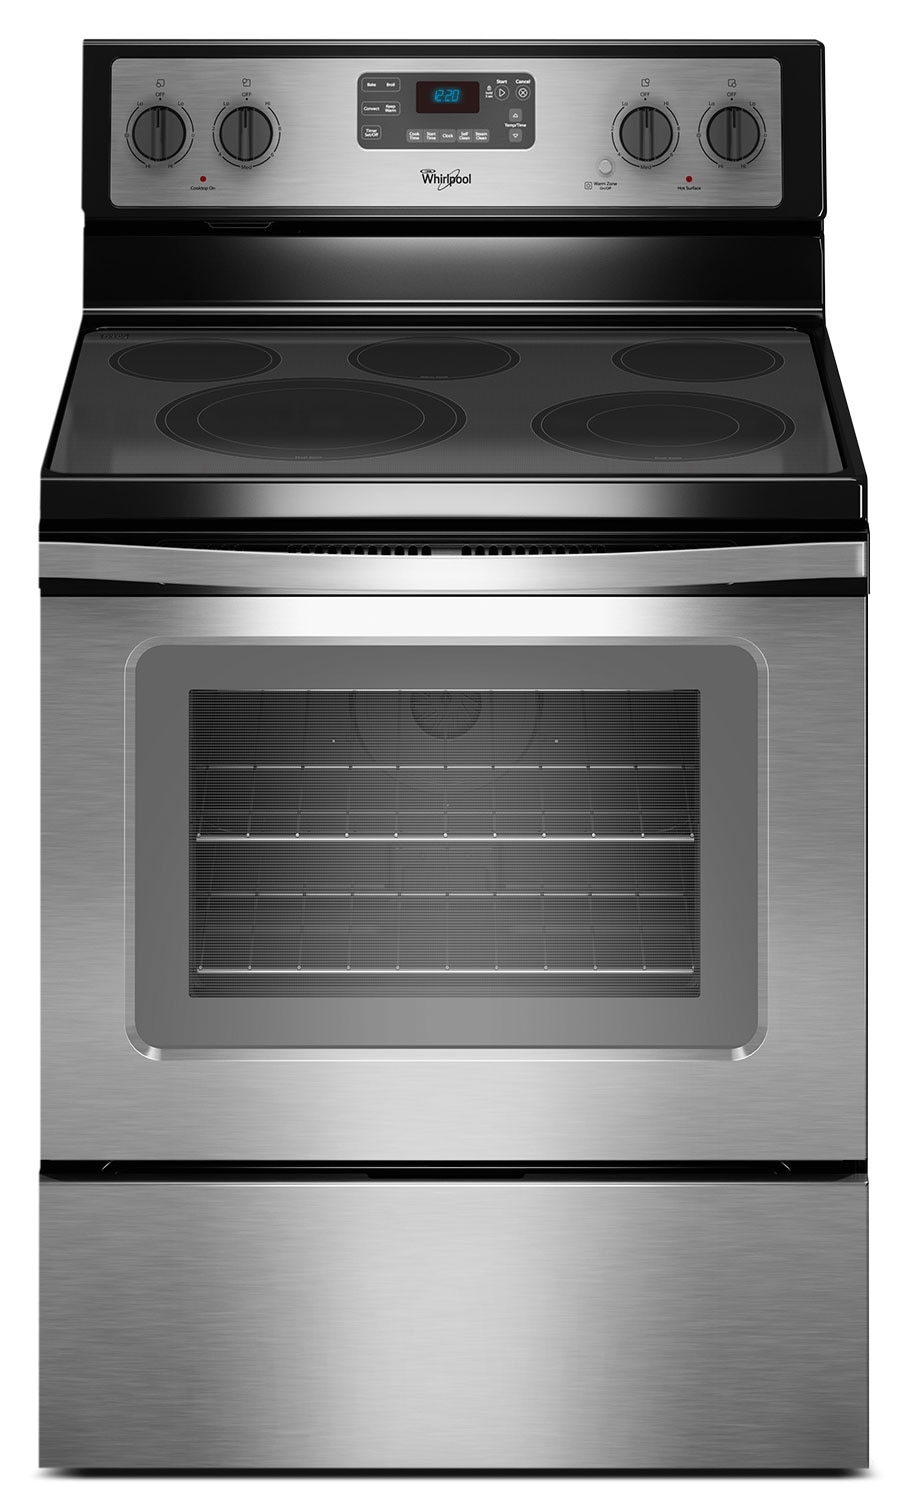 Cooking Products - Whirlpool 5.3 Cu. Ft. Free-Standing Electric Range - Stainless Steel